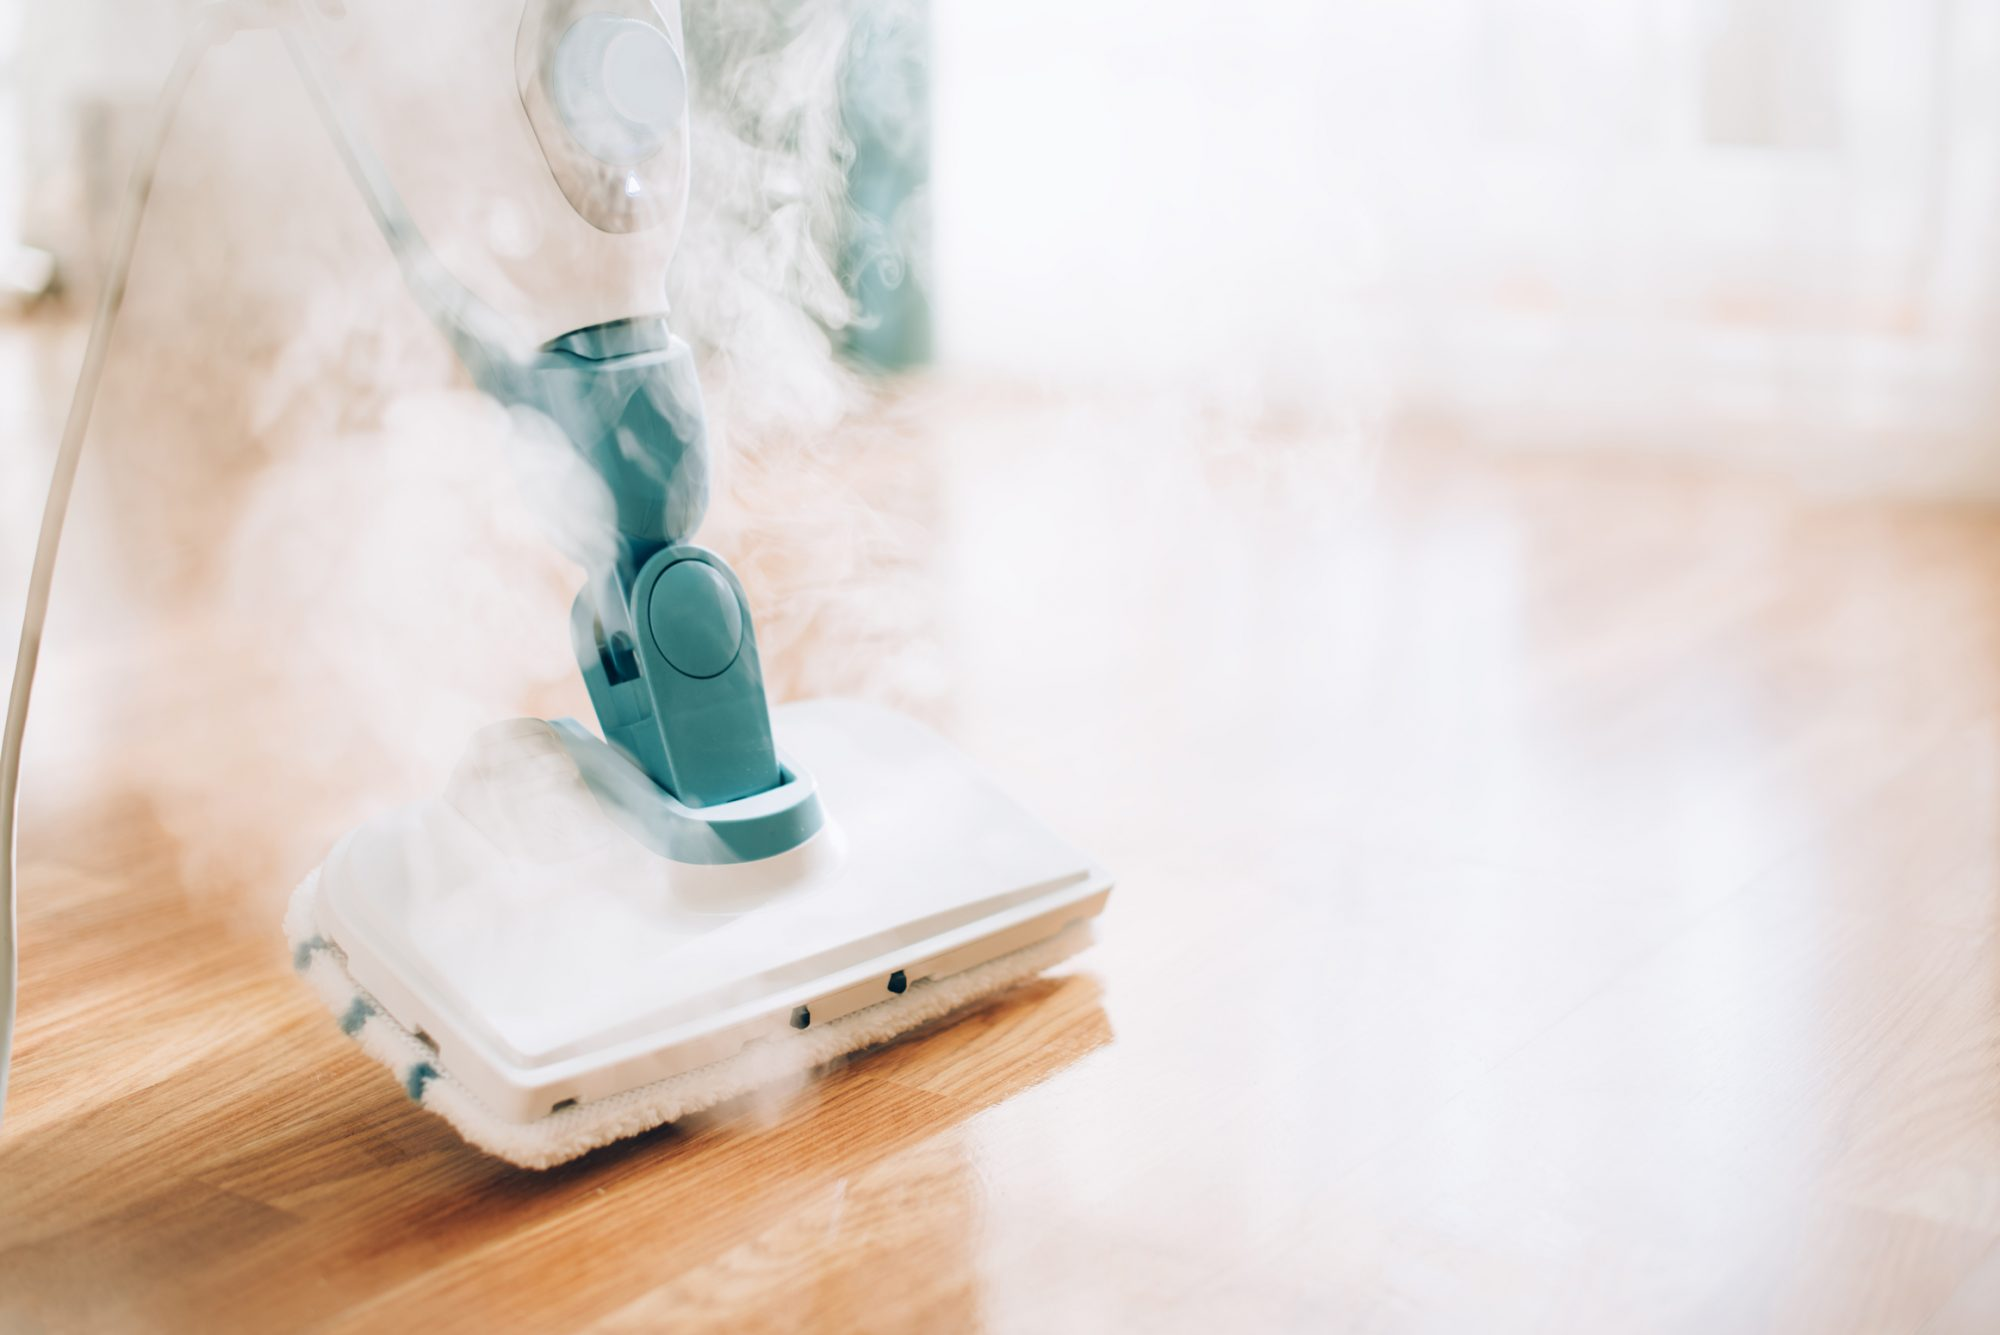 white and green steam mop being used on the wood floor